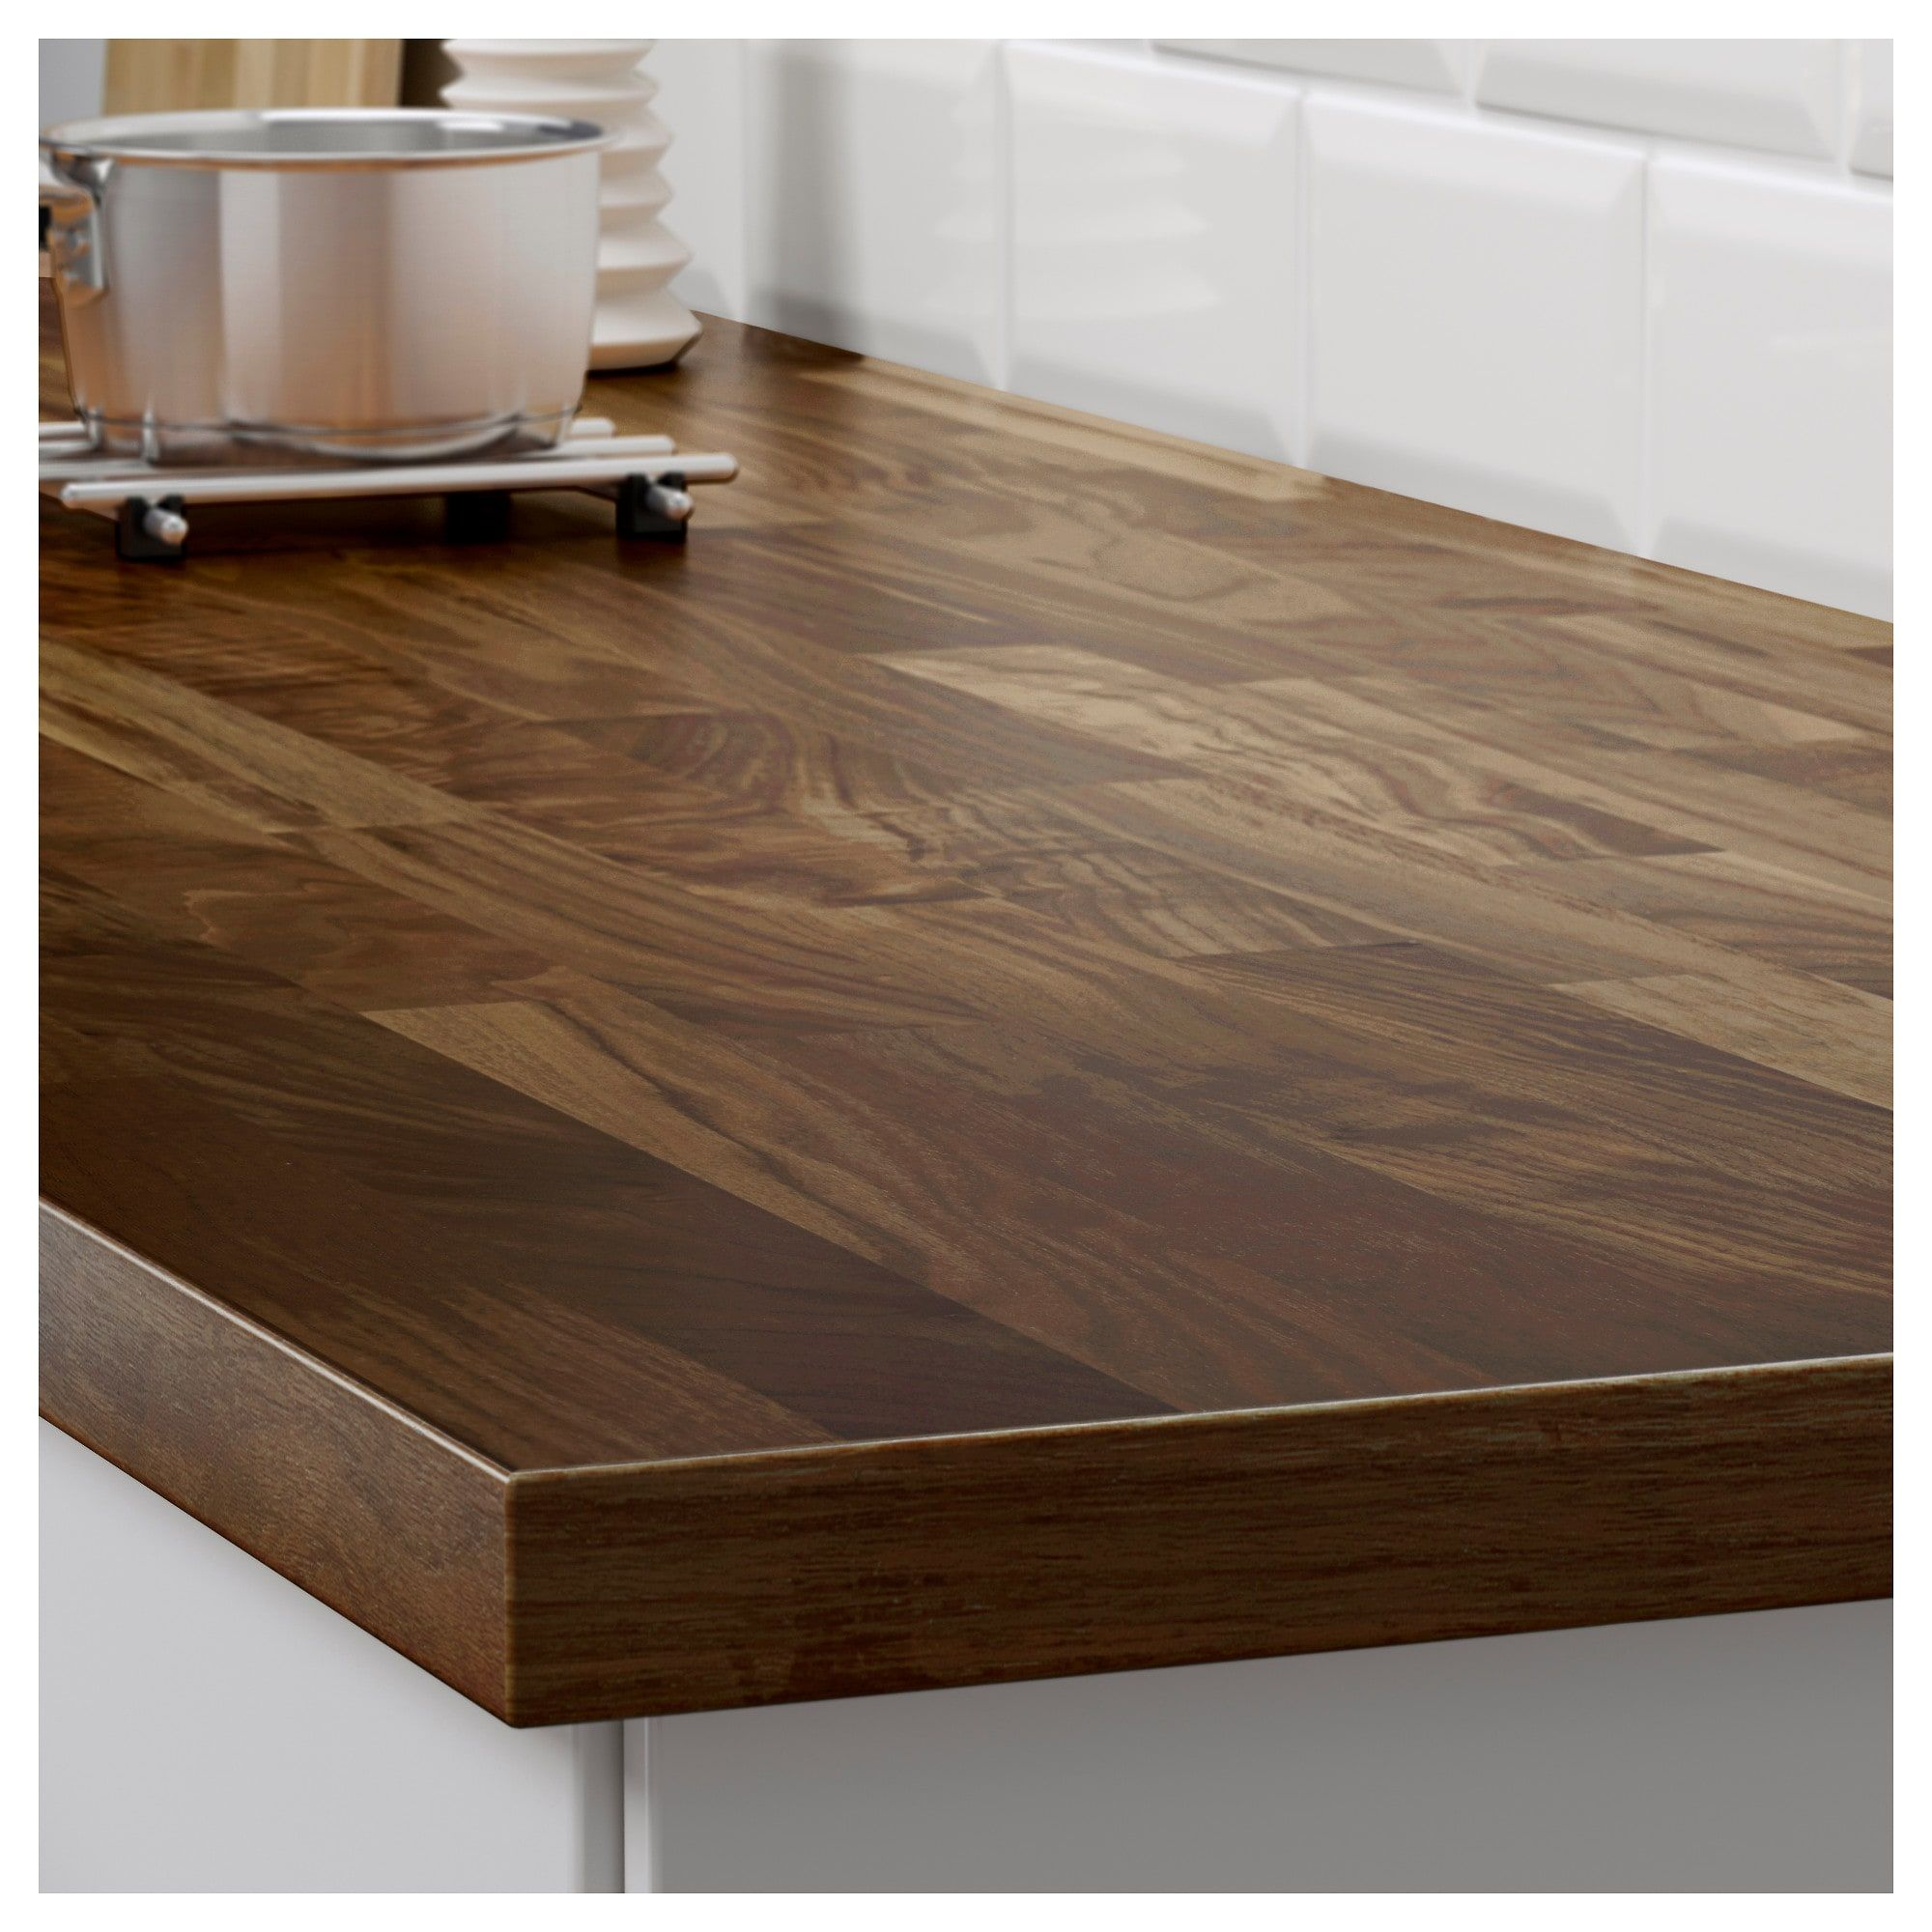 Karlby Countertop For Kitchen Island Walnut Veneer 74x42x1 1 2